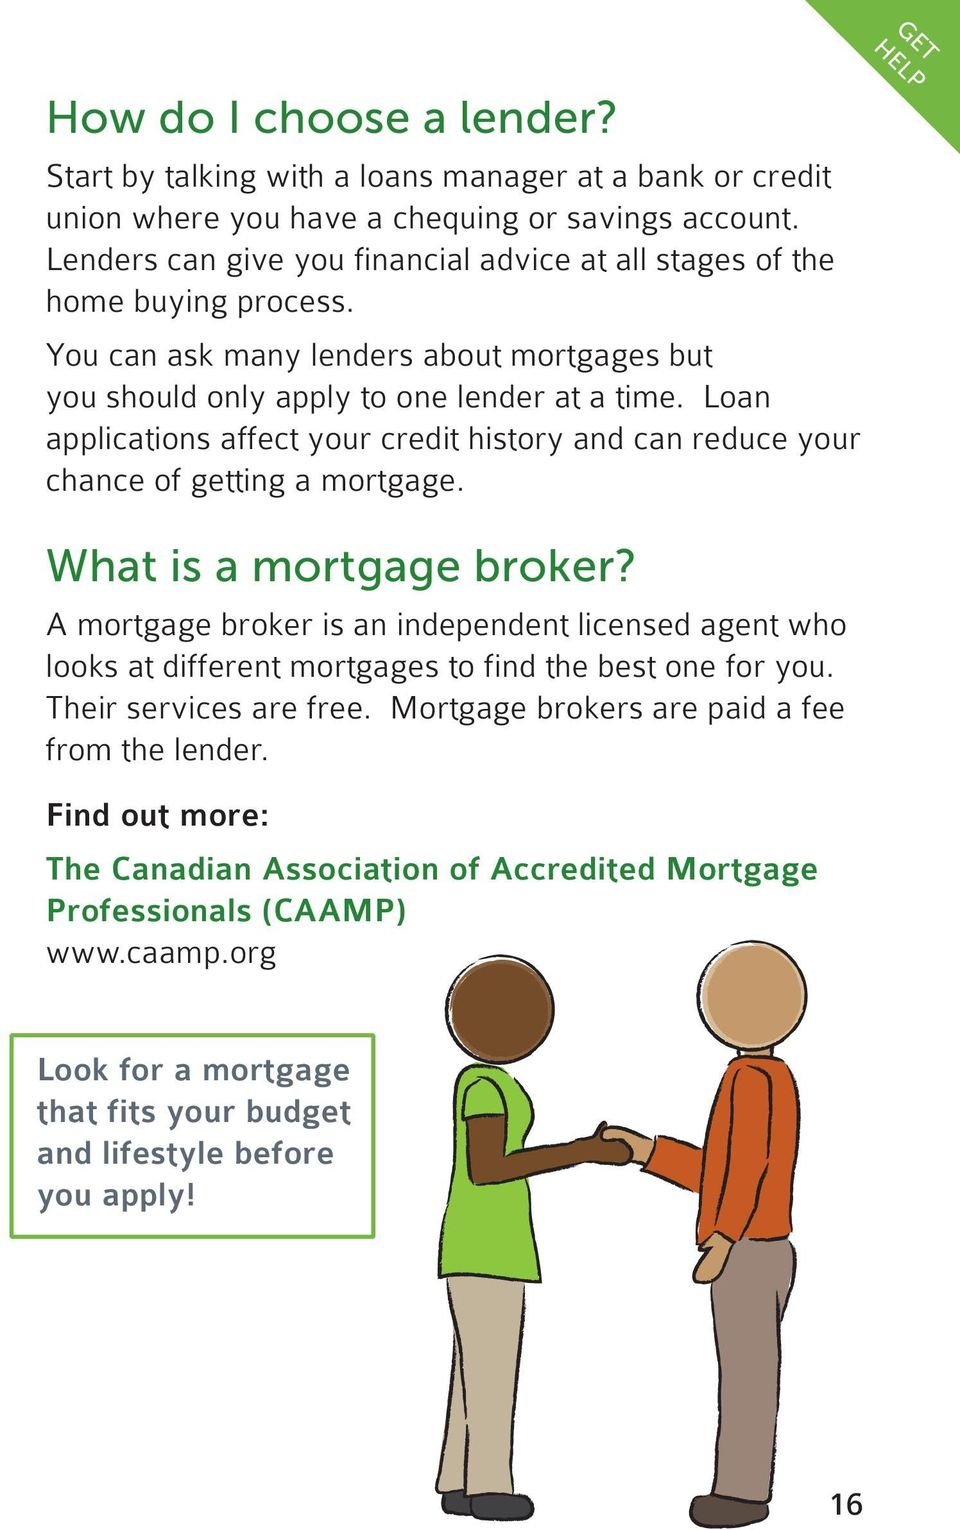 Loan applications affect your credit history and can reduce your chance of getting a mortgage. What is a mortgage broker?